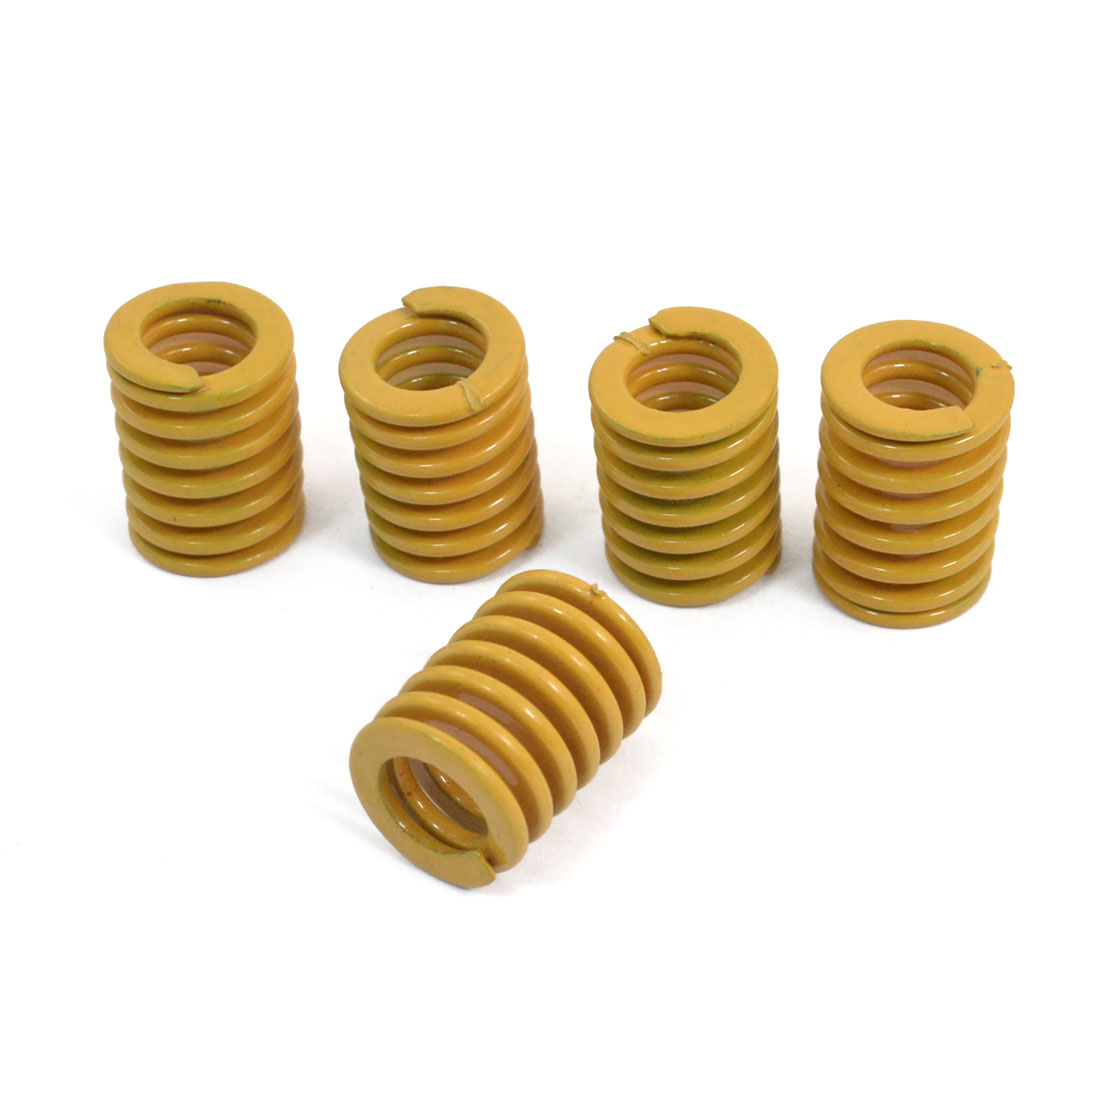 Orange 22mm x 16mm x 9mm Metal Tubular Section Mould Die Spring 5 Pcs